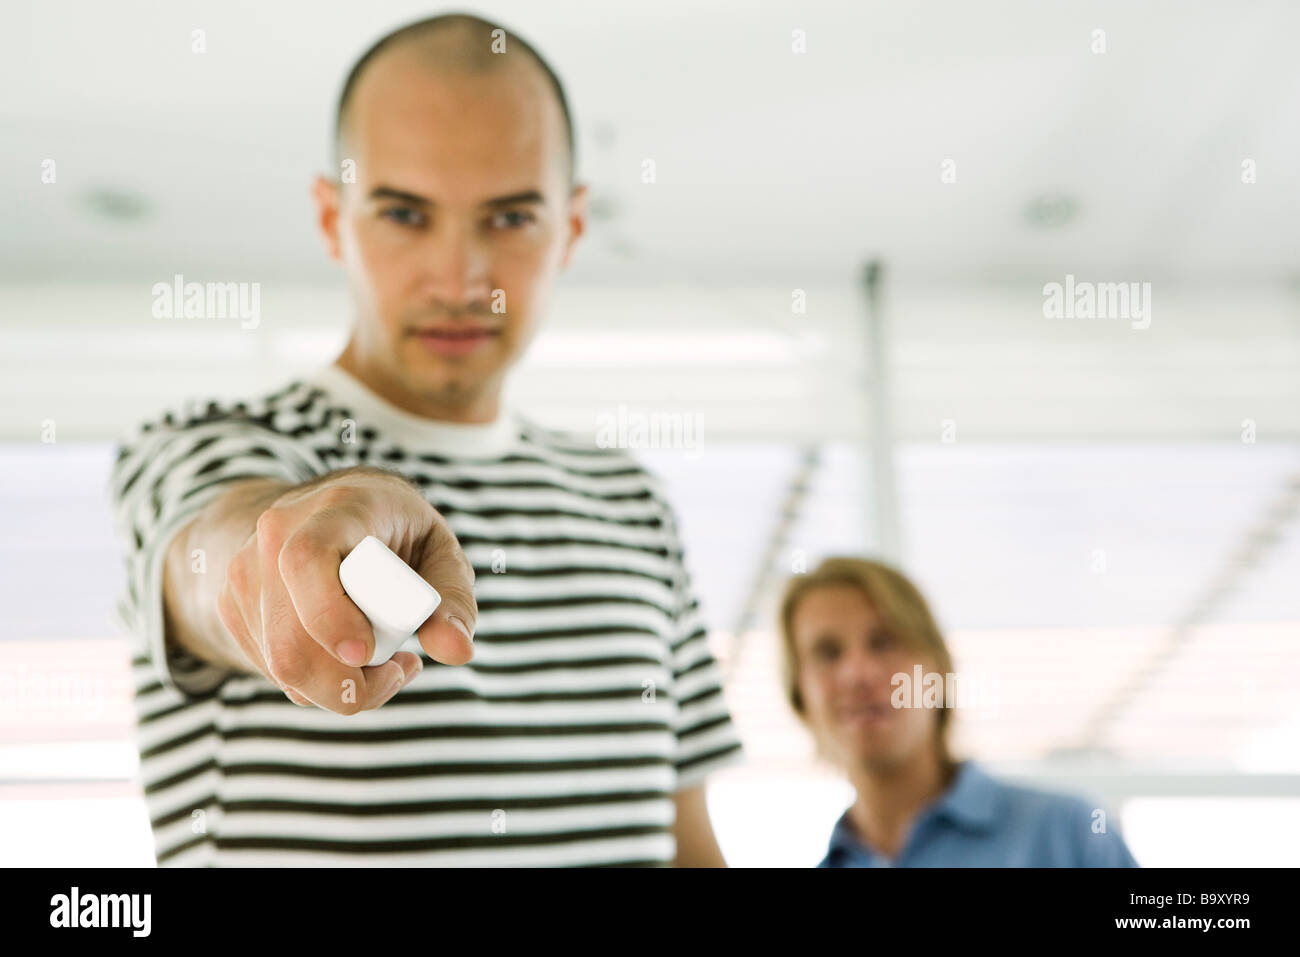 Man holding out wireless remote control, focus on foreground - Stock Image